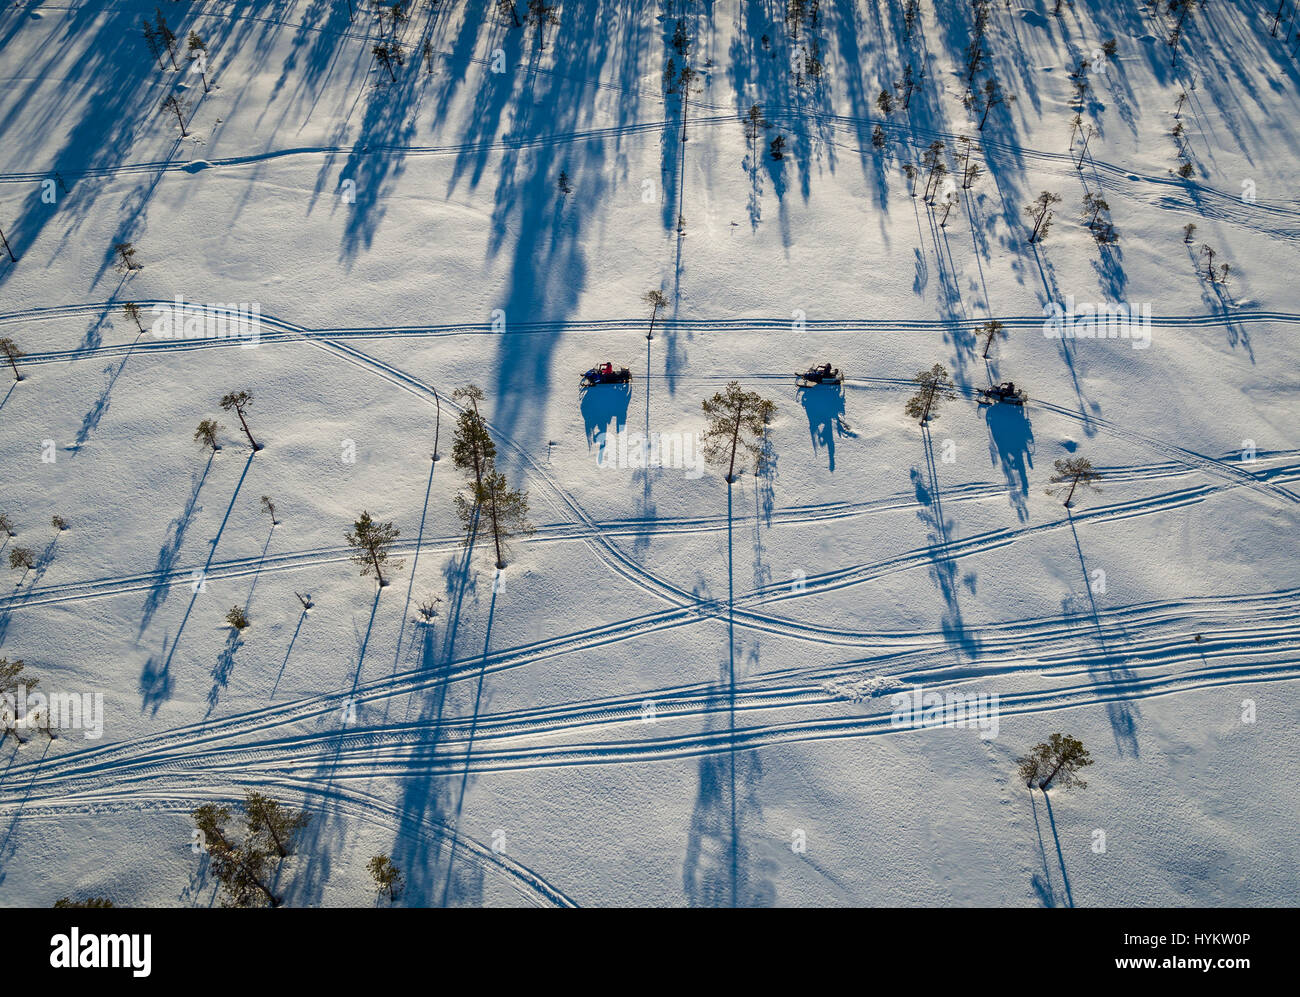 Snowmobiles, Lapland, Sweden. Drone photography - Stock Image